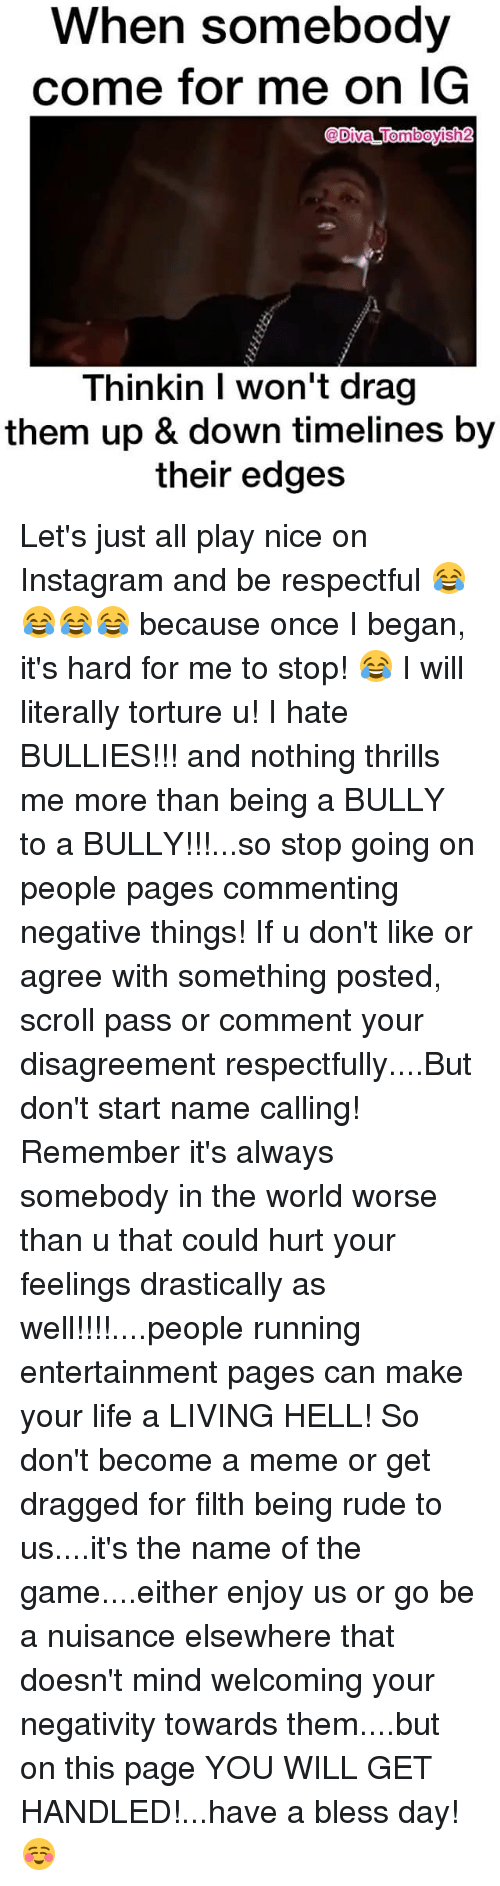 Having A Blessed Day: When somebody  come for me on G  @Diva Tomboysh2  Thinkin I won't drag  them up & down timelines by  their edges Let's just all play nice on Instagram and be respectful 😂😂😂😂 because once I began, it's hard for me to stop! 😂 I will literally torture u! I hate BULLIES!!! and nothing thrills me more than being a BULLY to a BULLY!!!...so stop going on people pages commenting negative things! If u don't like or agree with something posted, scroll pass or comment your disagreement respectfully....But don't start name calling! Remember it's always somebody in the world worse than u that could hurt your feelings drastically as well!!!!....people running entertainment pages can make your life a LIVING HELL! So don't become a meme or get dragged for filth being rude to us....it's the name of the game....either enjoy us or go be a nuisance elsewhere that doesn't mind welcoming your negativity towards them....but on this page YOU WILL GET HANDLED!...have a bless day! ☺️